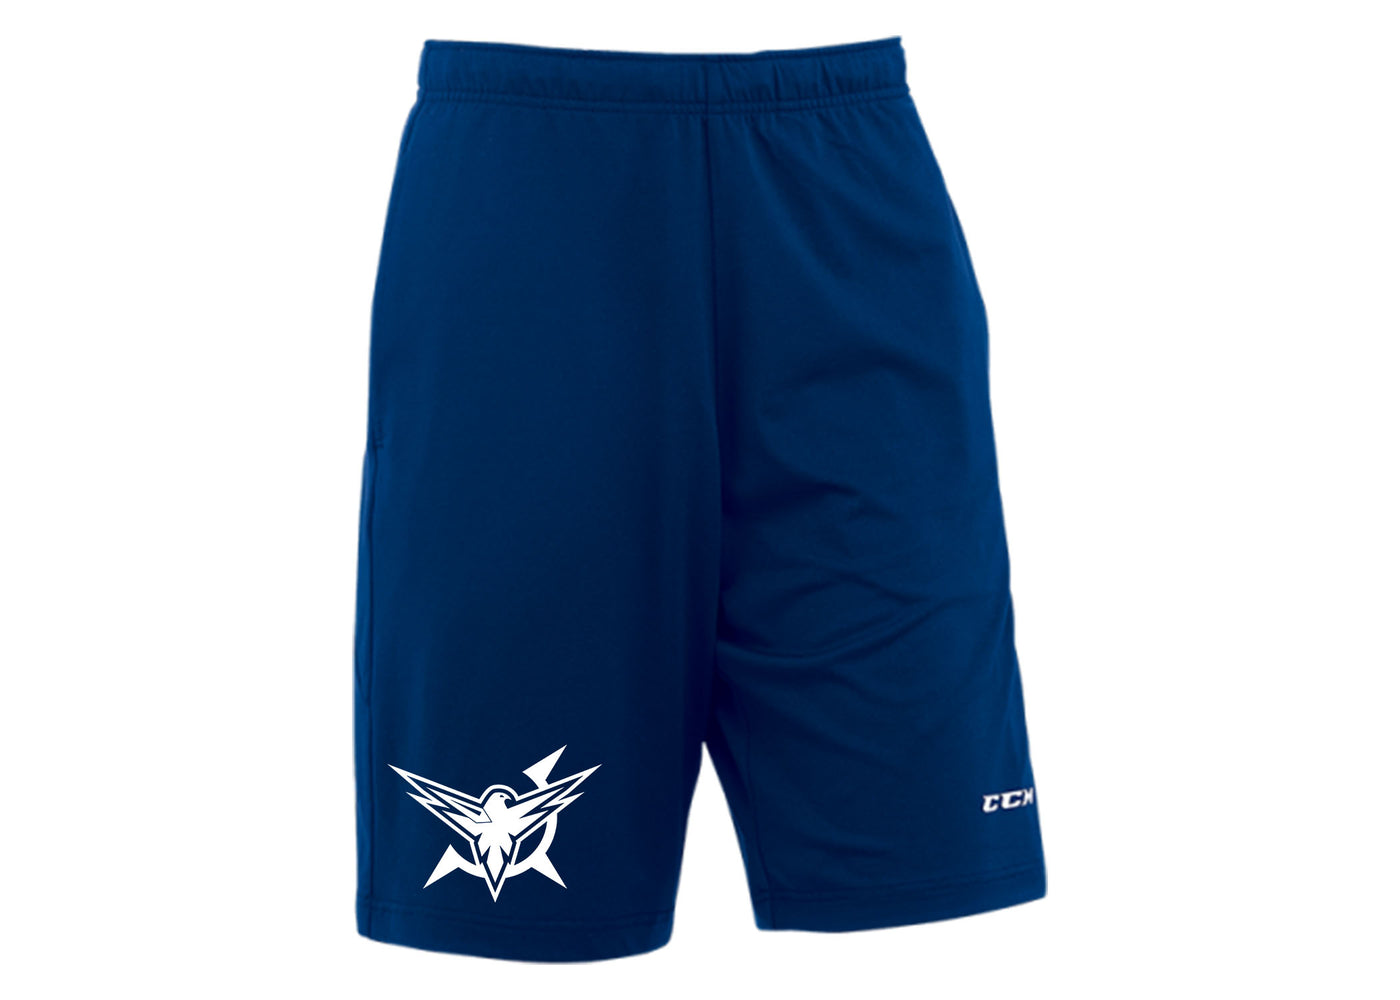 Icehawks CCM Team Training Shorts